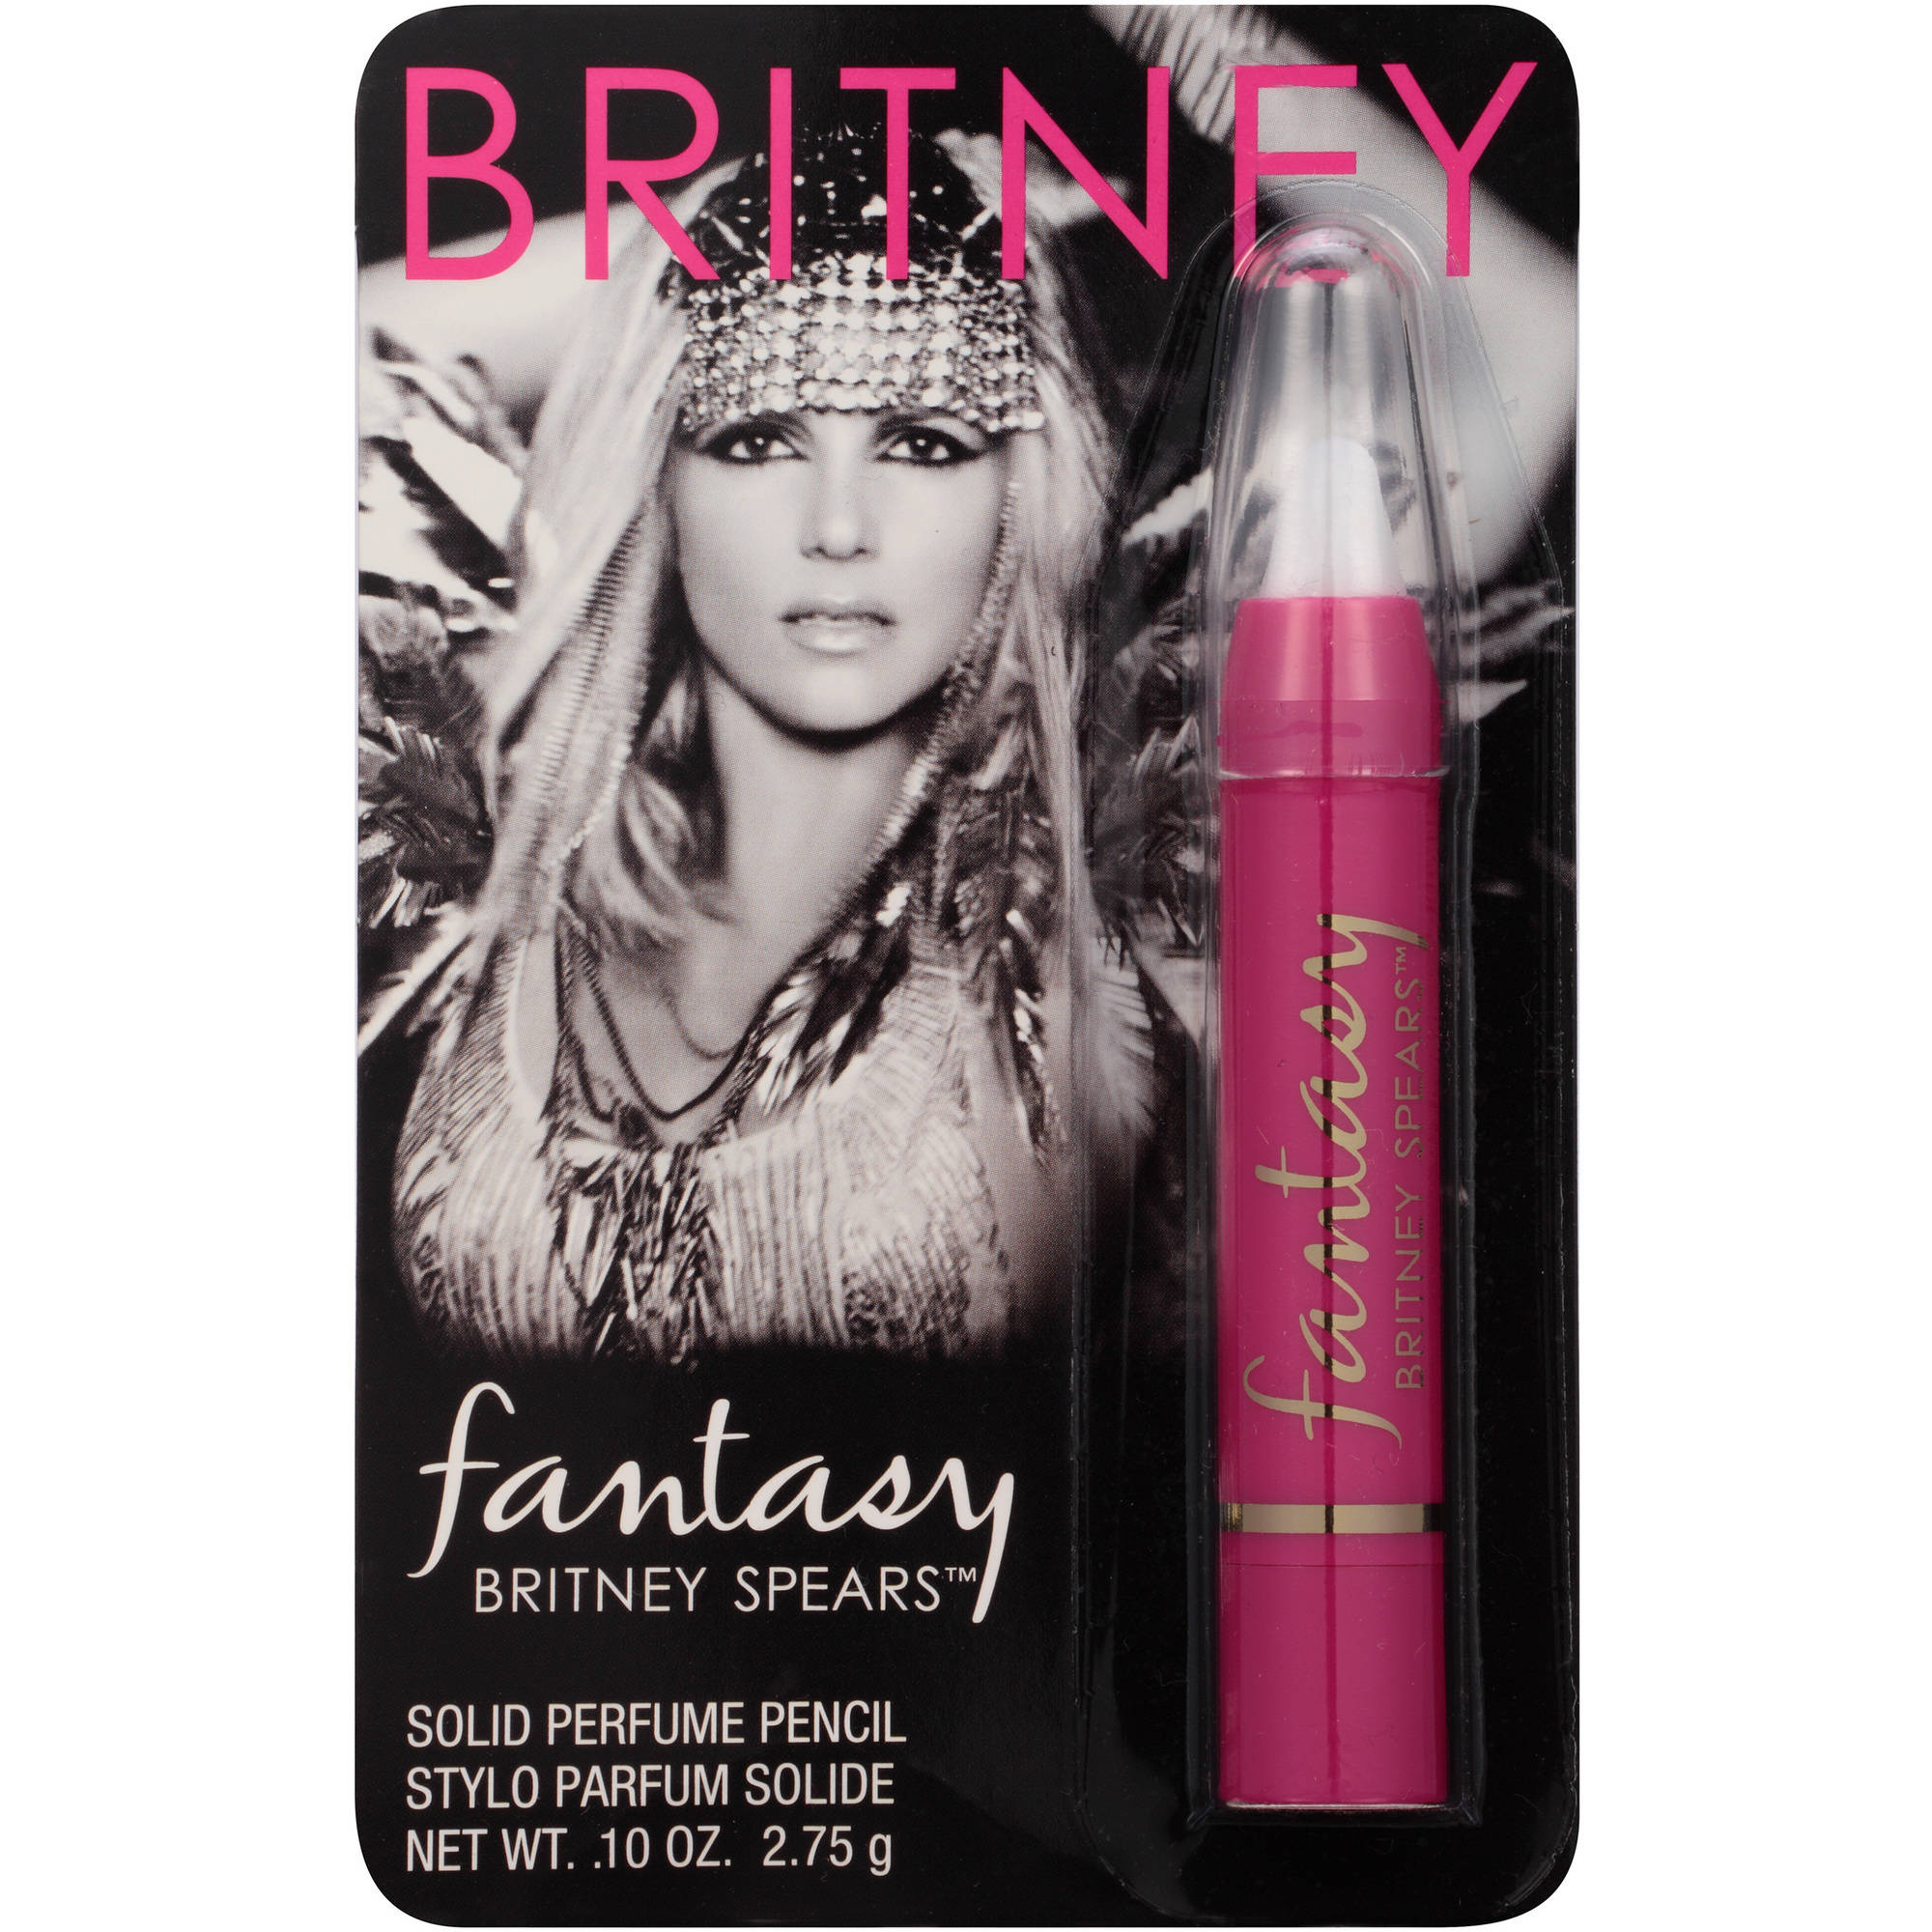 Britney Spears Fantasy Solid Perfume Pencil, .10 oz